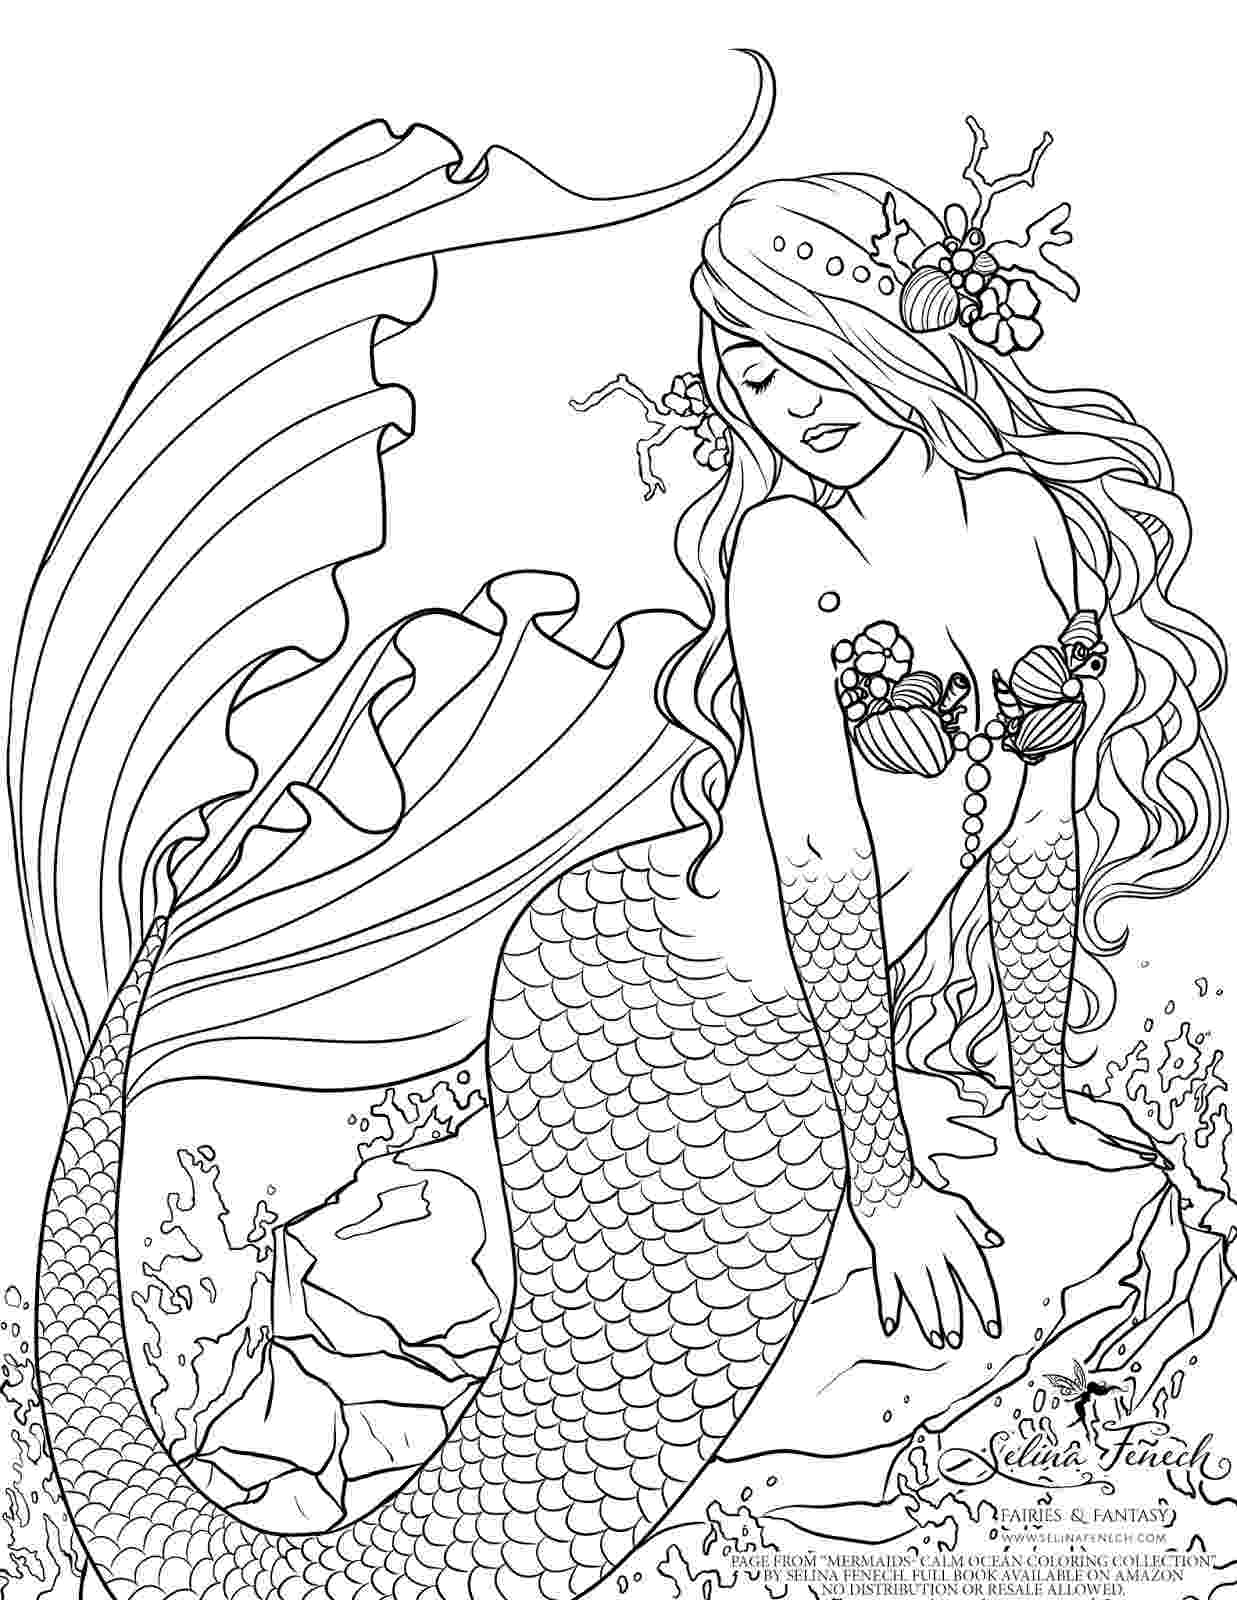 free mermaid coloring pages mermaid coloring pages to download and print for free coloring mermaid pages free